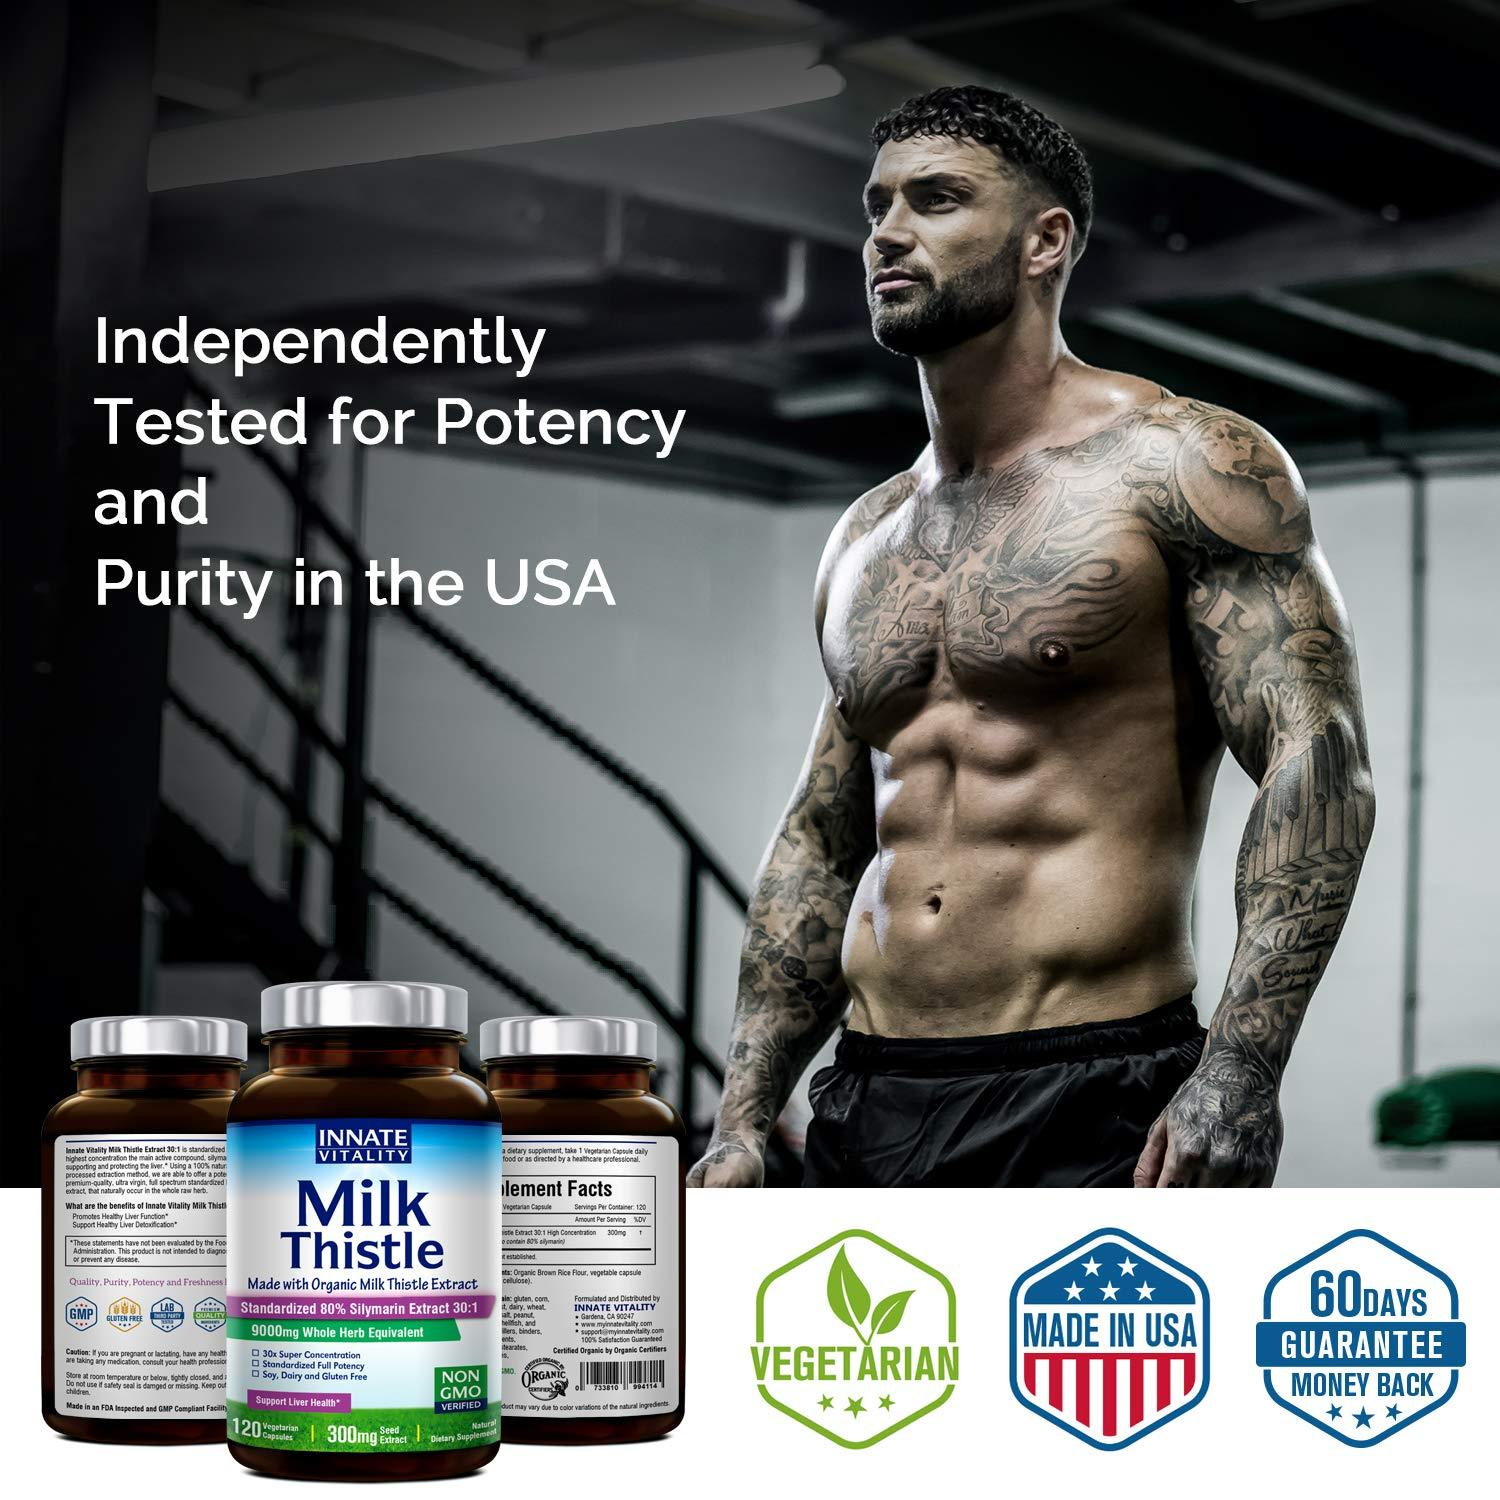 Organic Milk Thistle Extract, Standardized 80% Silymarin Flavonoids, 30:1 Highest Concentration, 9000mg Equivalent, 300mg per Caps, 120 Veggie Caps, Non-GMO,Gluten Dairy & Soy Free, Support Liver Heal